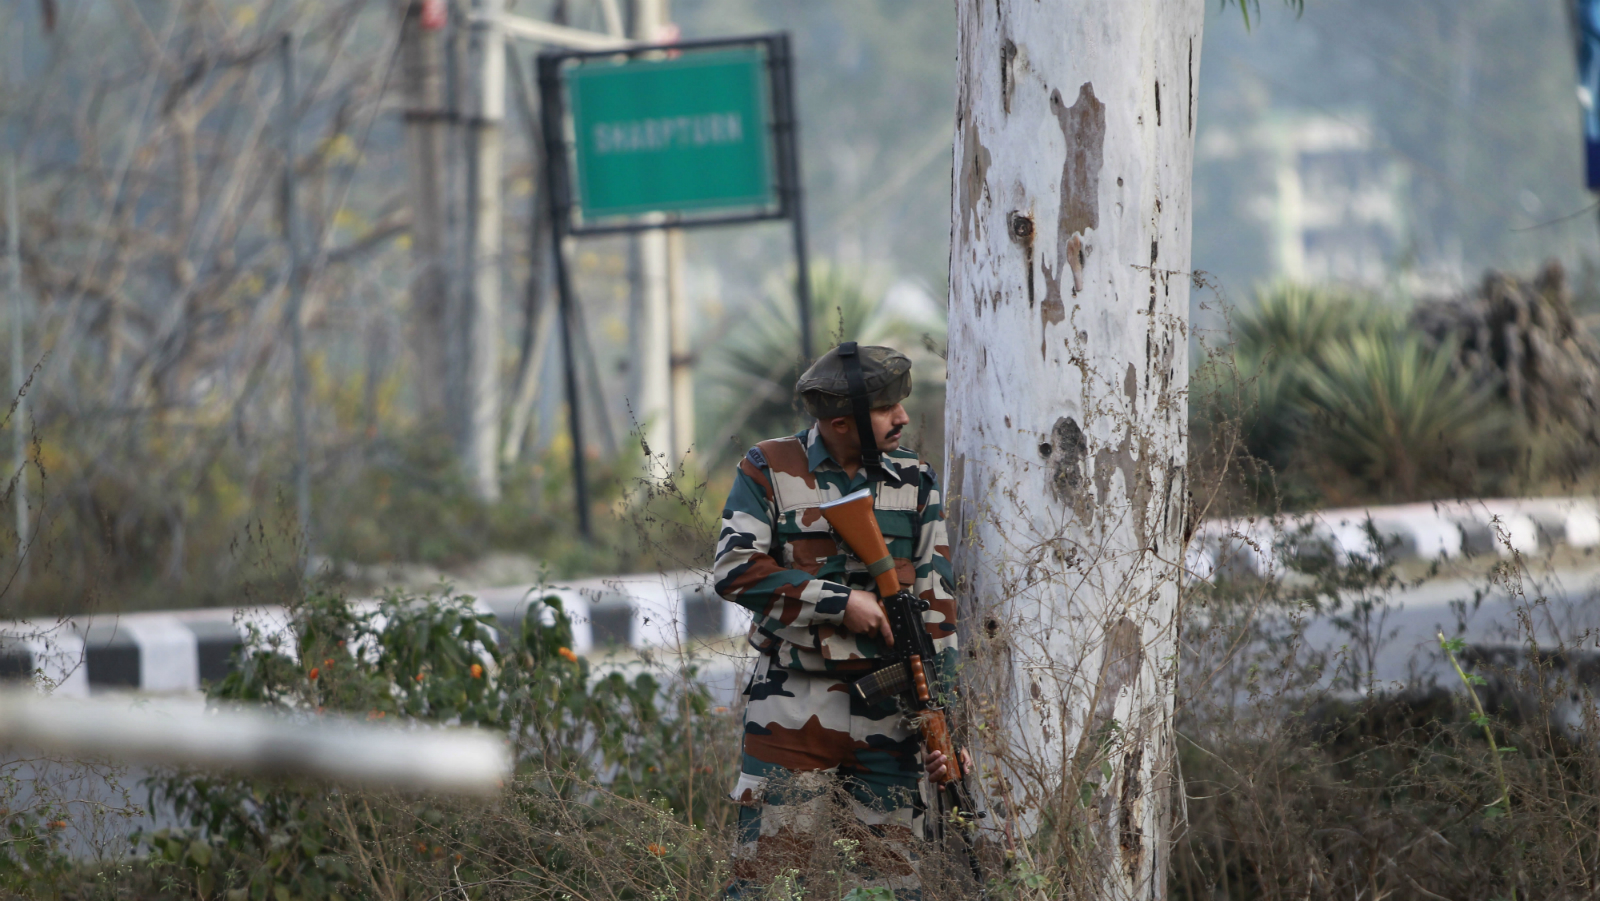 An Indian soldier takes position outside an army camp at Nagrota, in the outskirts of Jammu, India, Tuesday, Nov. 29, 2016. Police said that militants fired indiscriminately and tried to enter an army camp in Nagrota town, triggering a fierce gun battle.